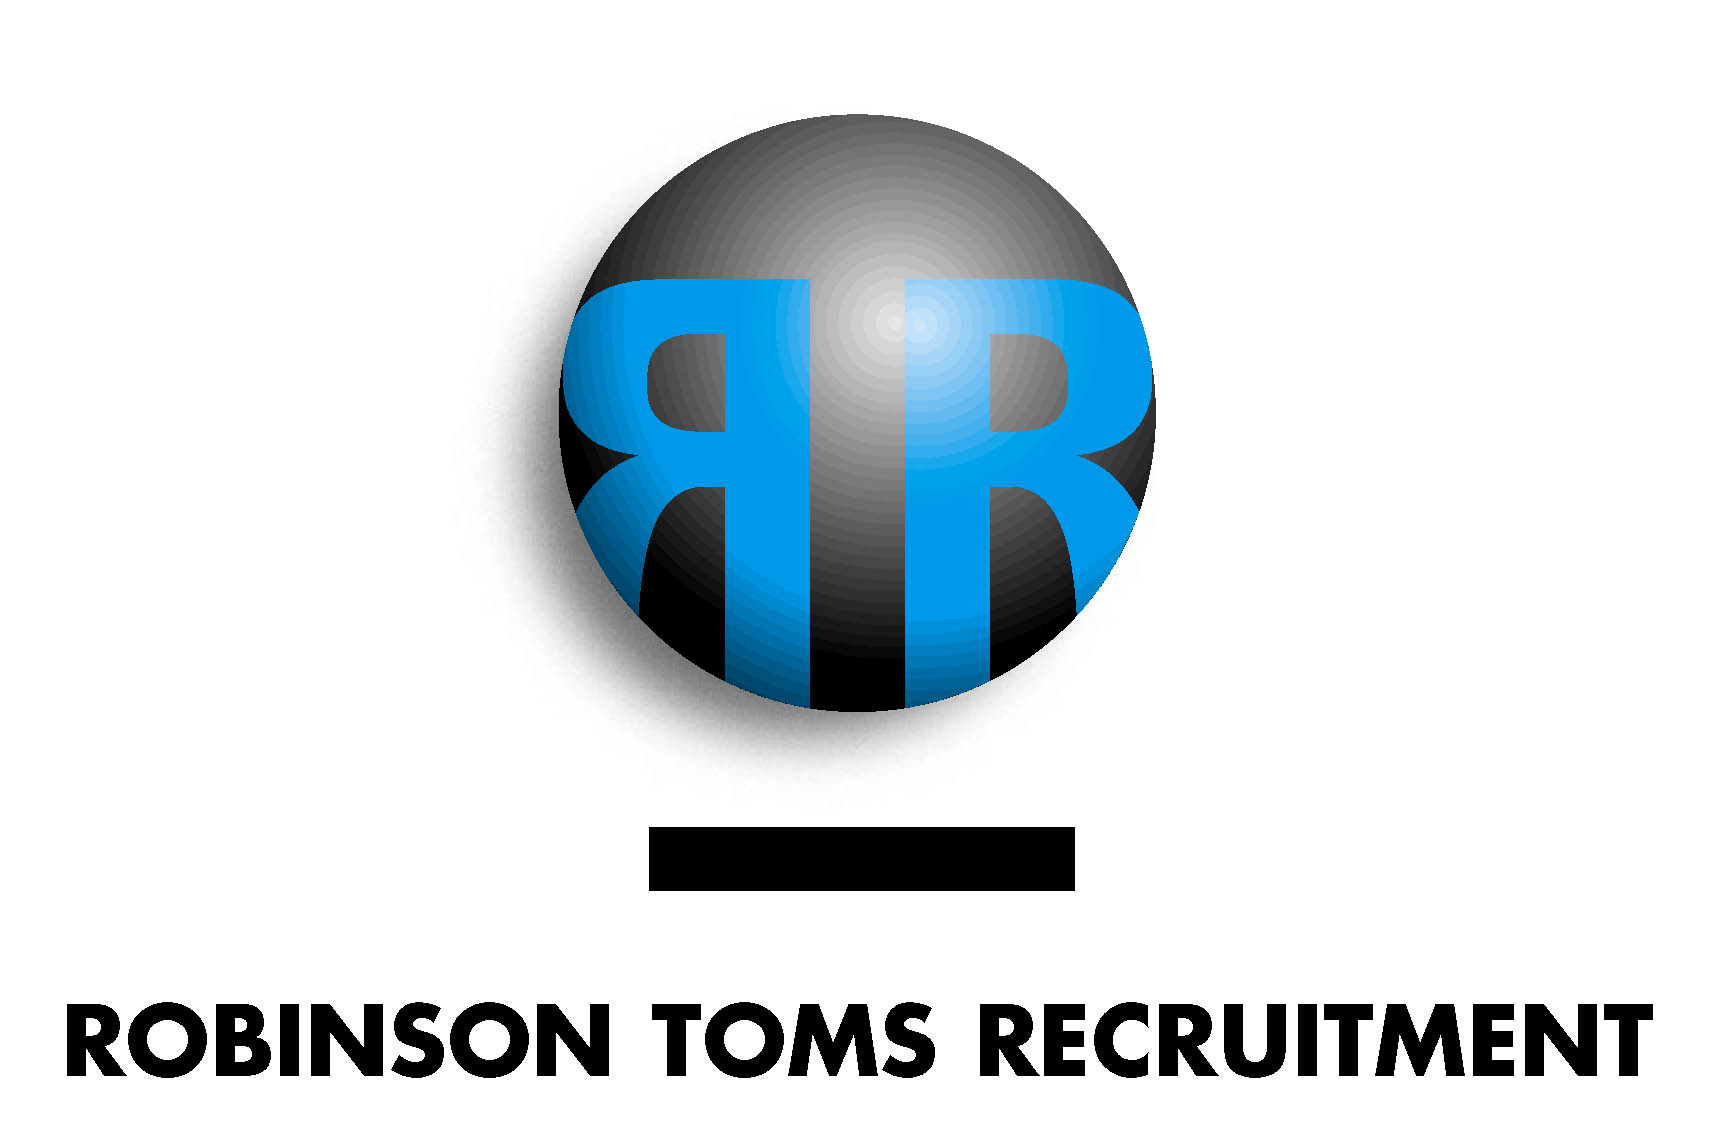 Robinson Toms Recruitment Logo and Website Link